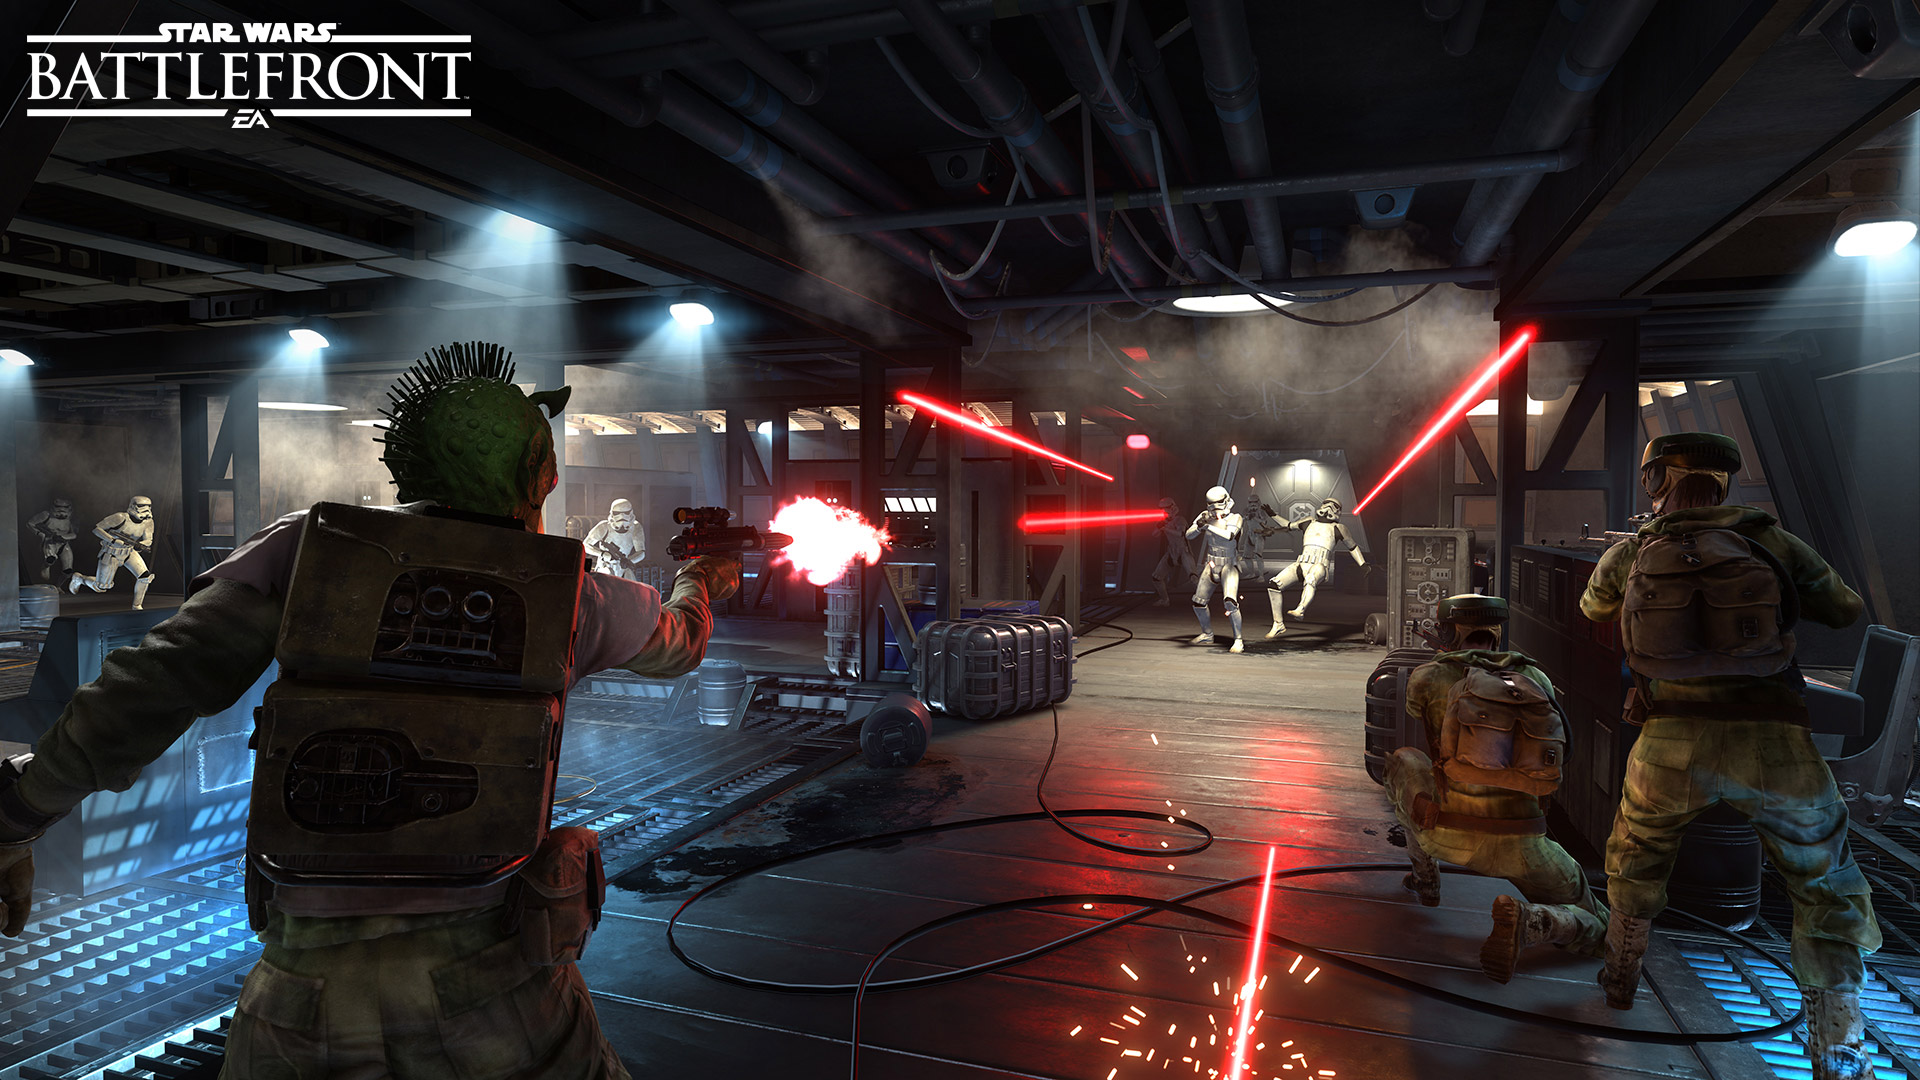 Star Wars Battlefront gets its own team deathmatch with Blast mode